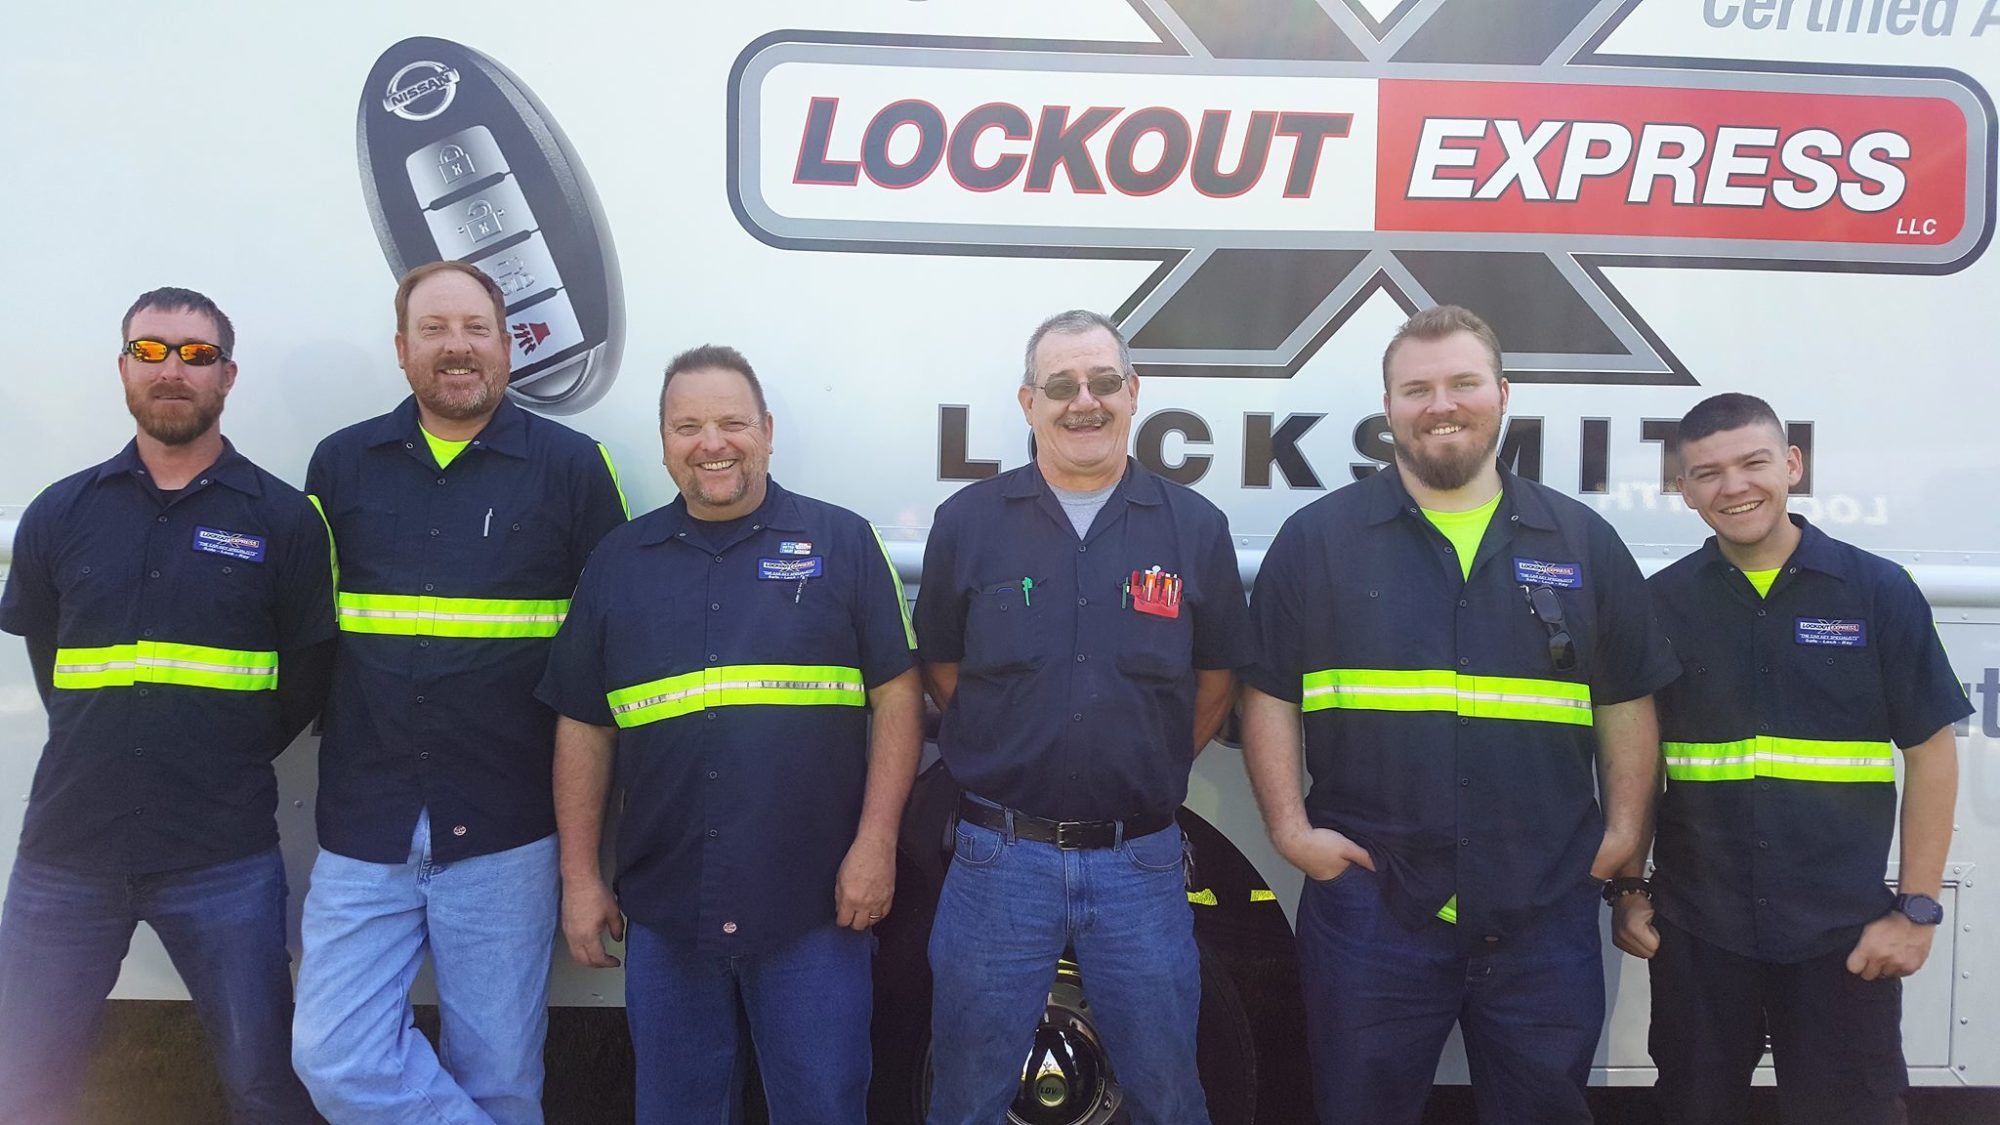 lockout express team